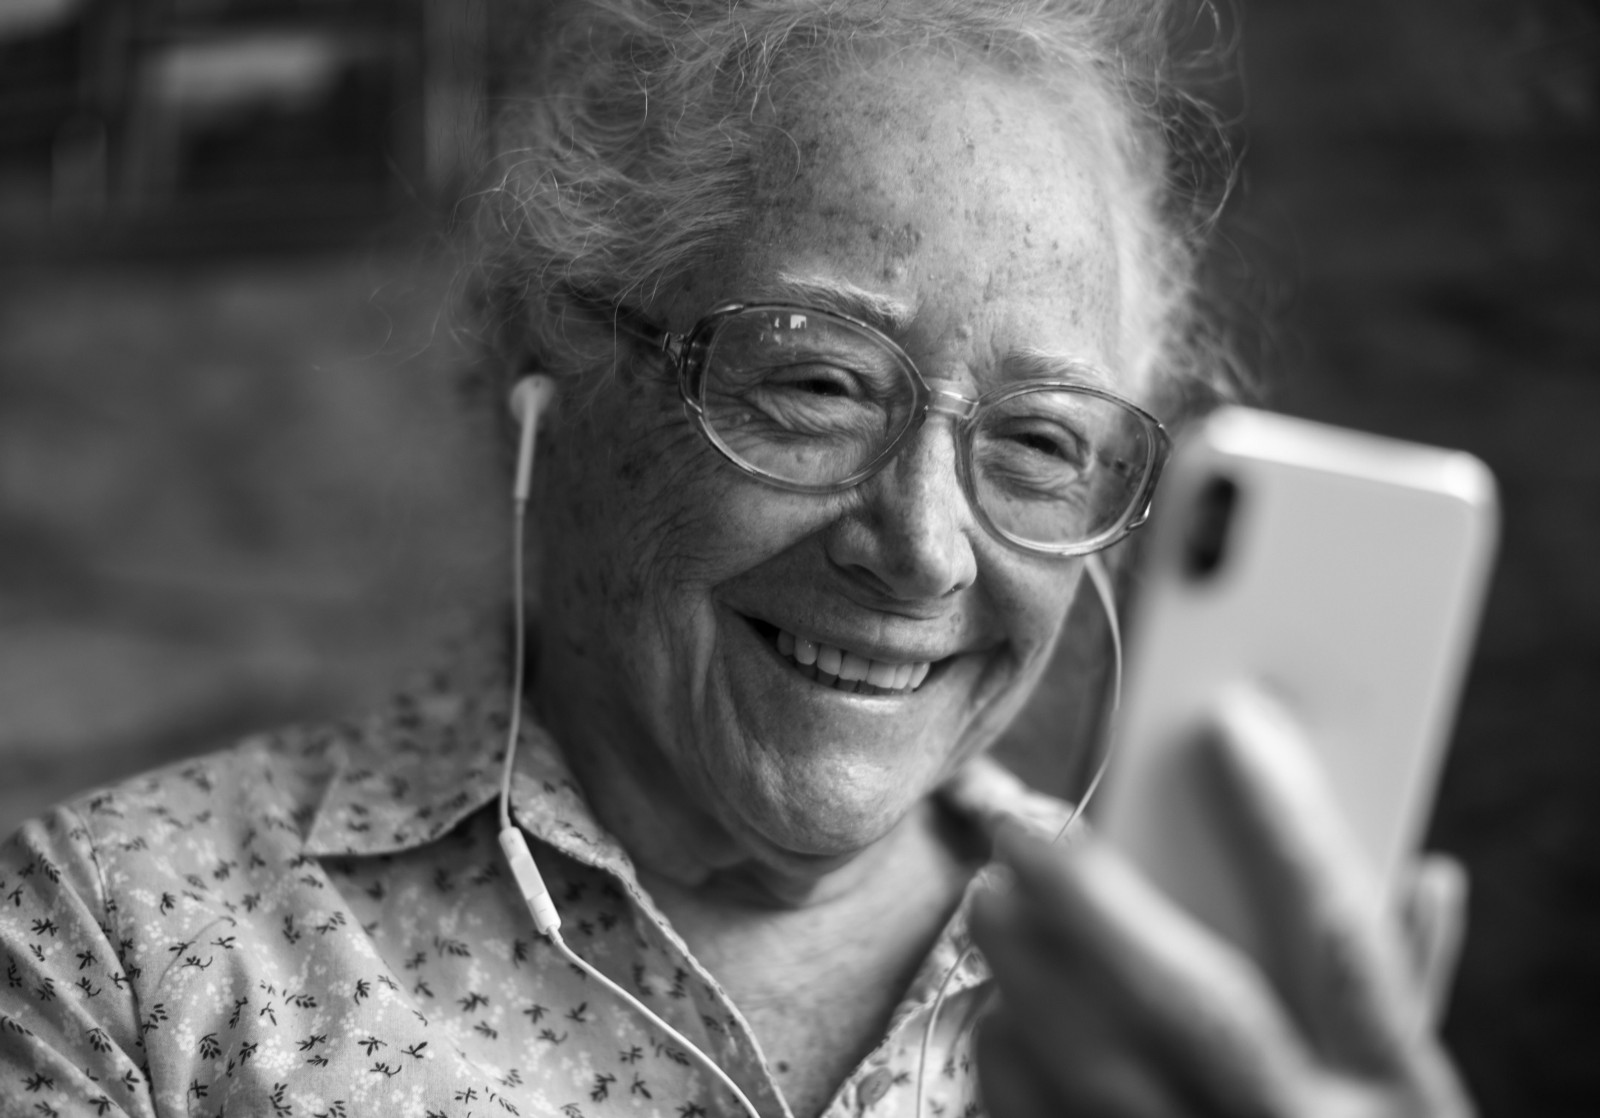 An older person wearing ear-pod headphones smiles while looking at their smartphone. Photo credit: Rawpixel viaUnsplash